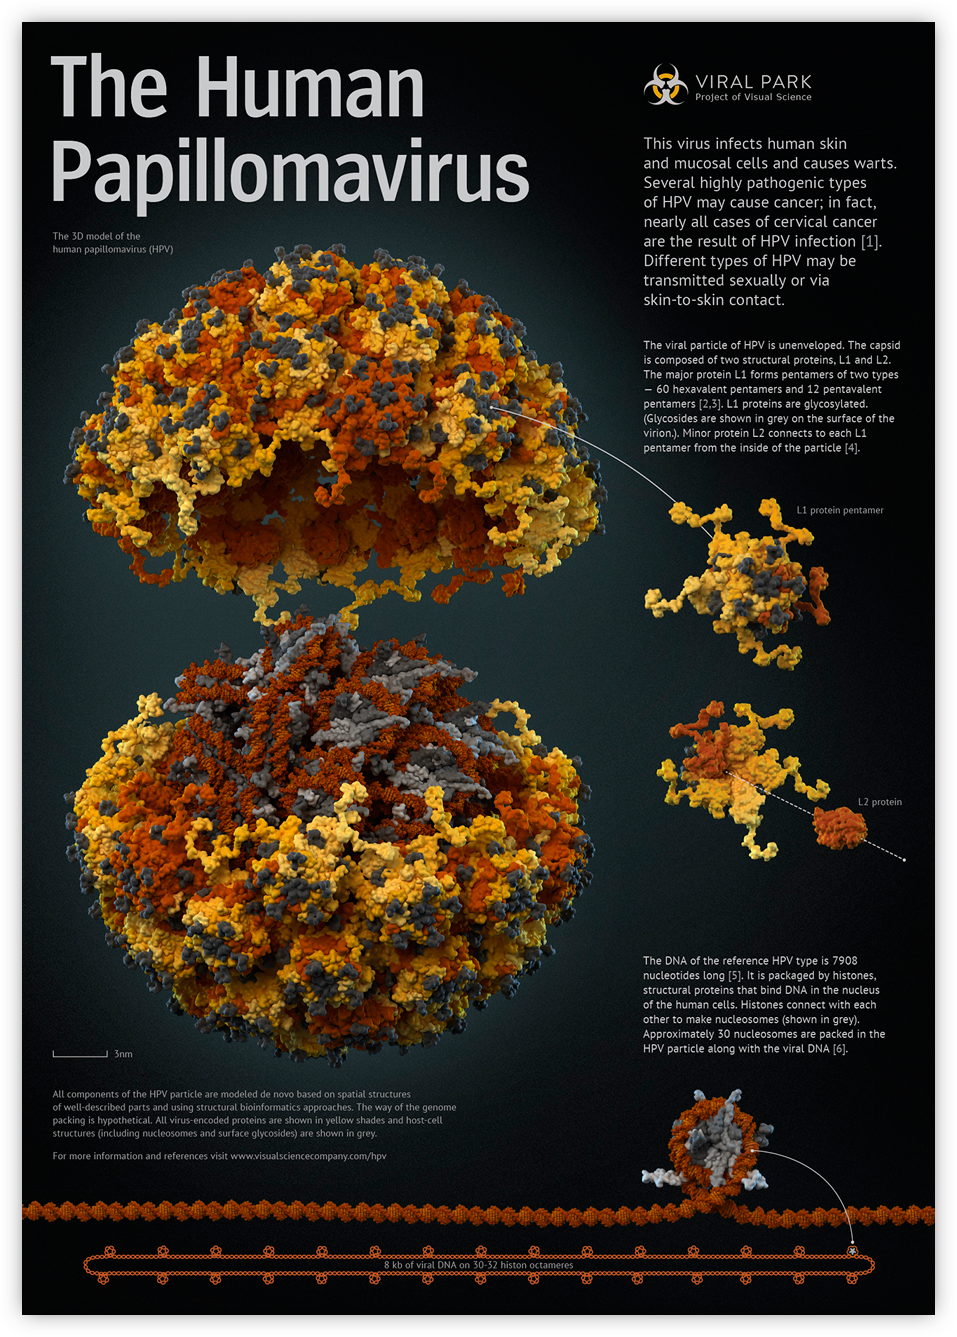 another term for human papillomavirus is